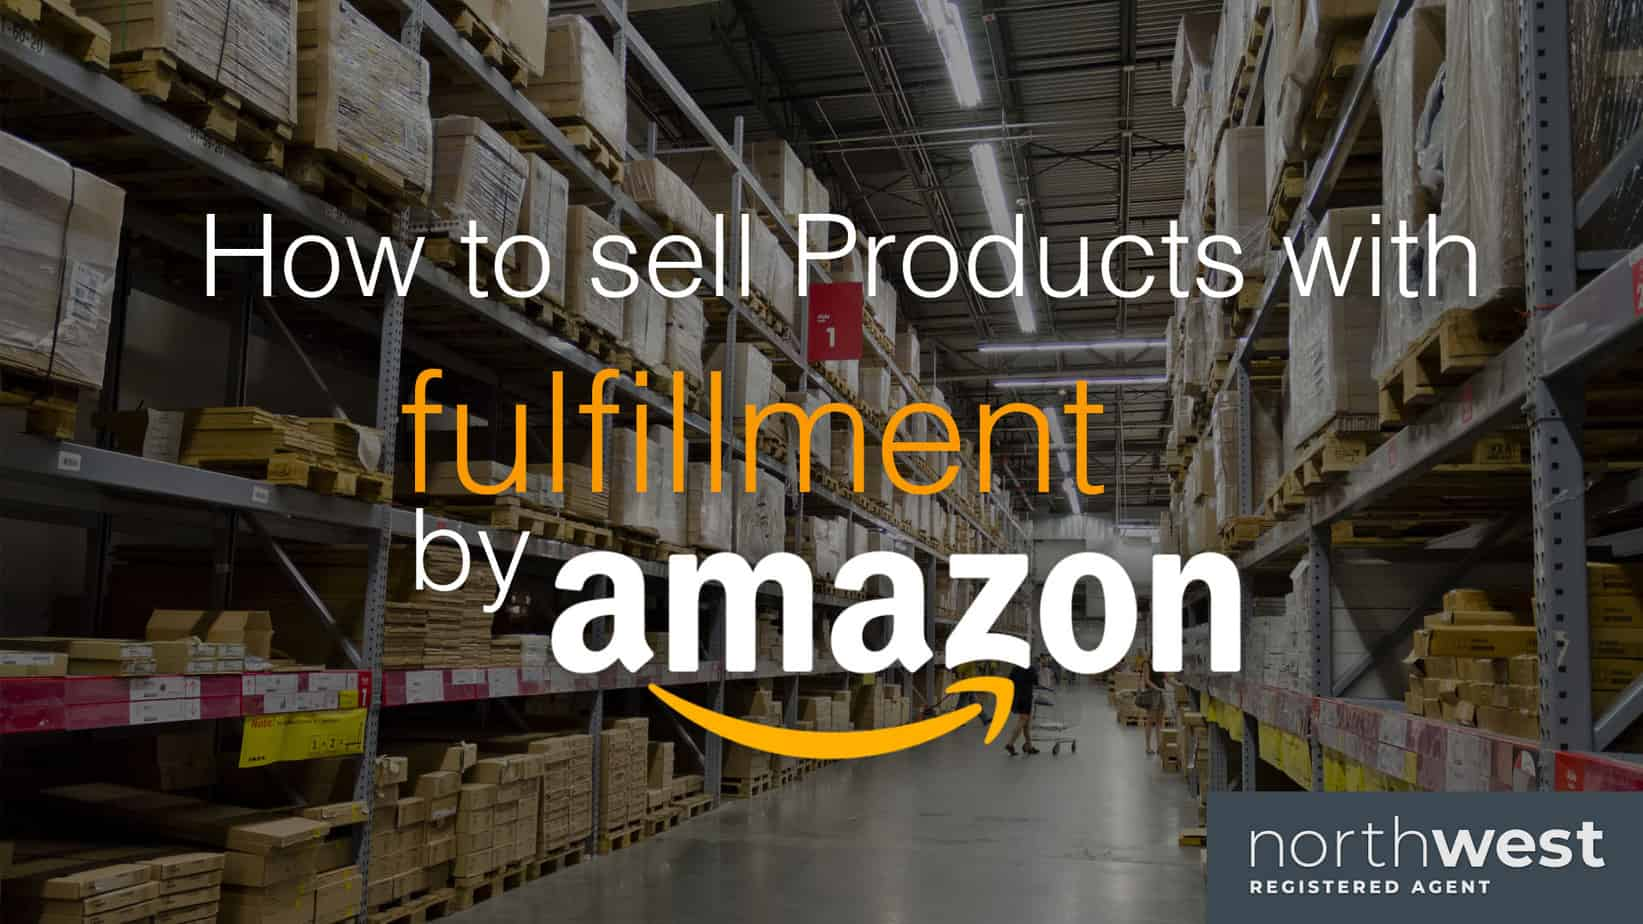 best products to sell on amazon fba – A Summary